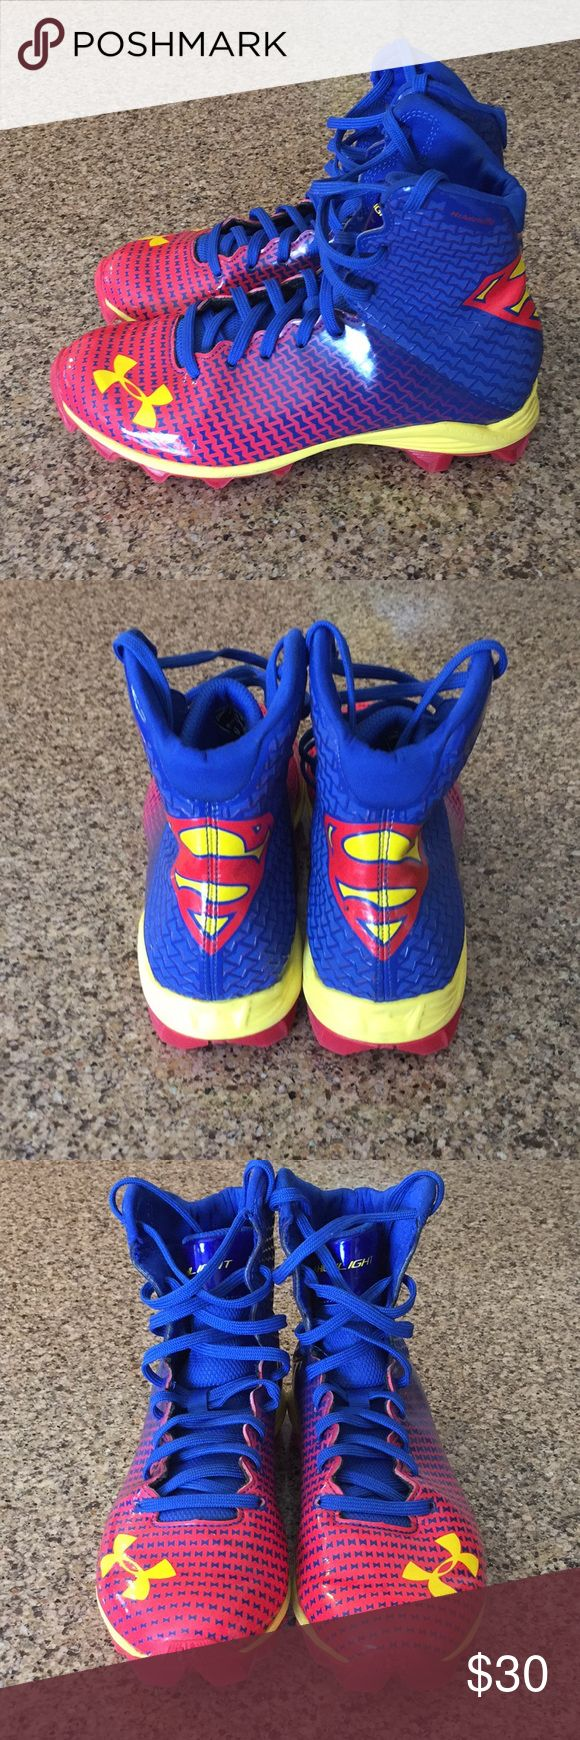 Under Armour youth football cleats 5Y Good used condition,See all pictures.Superman Highlight. Under Armour Shoes